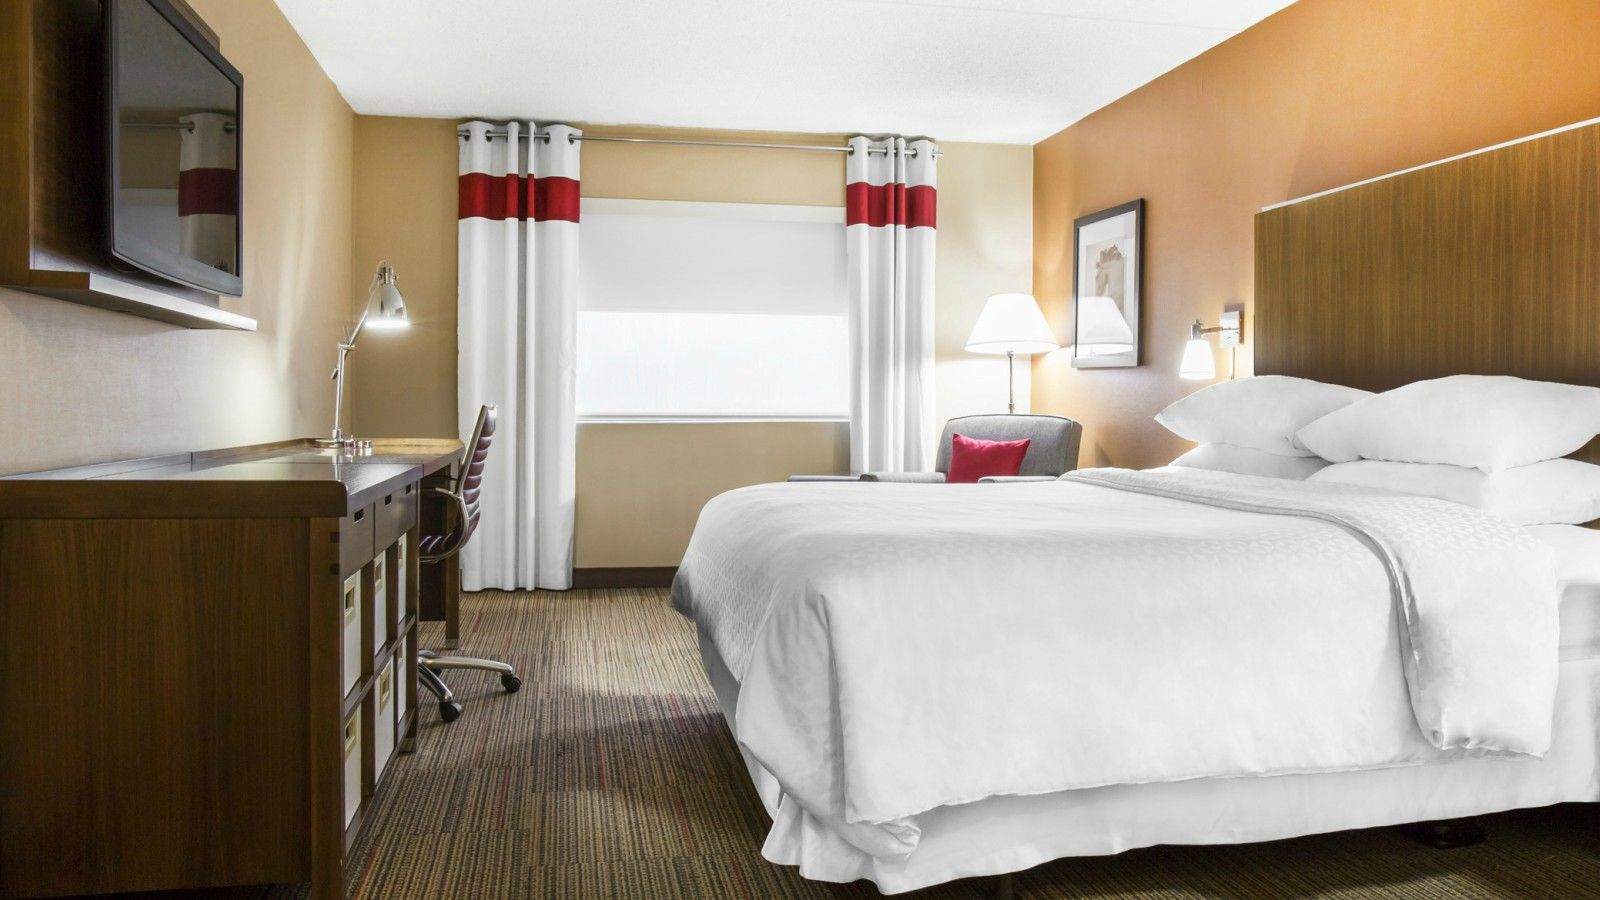 Lexington Accommodations - Accessible Room